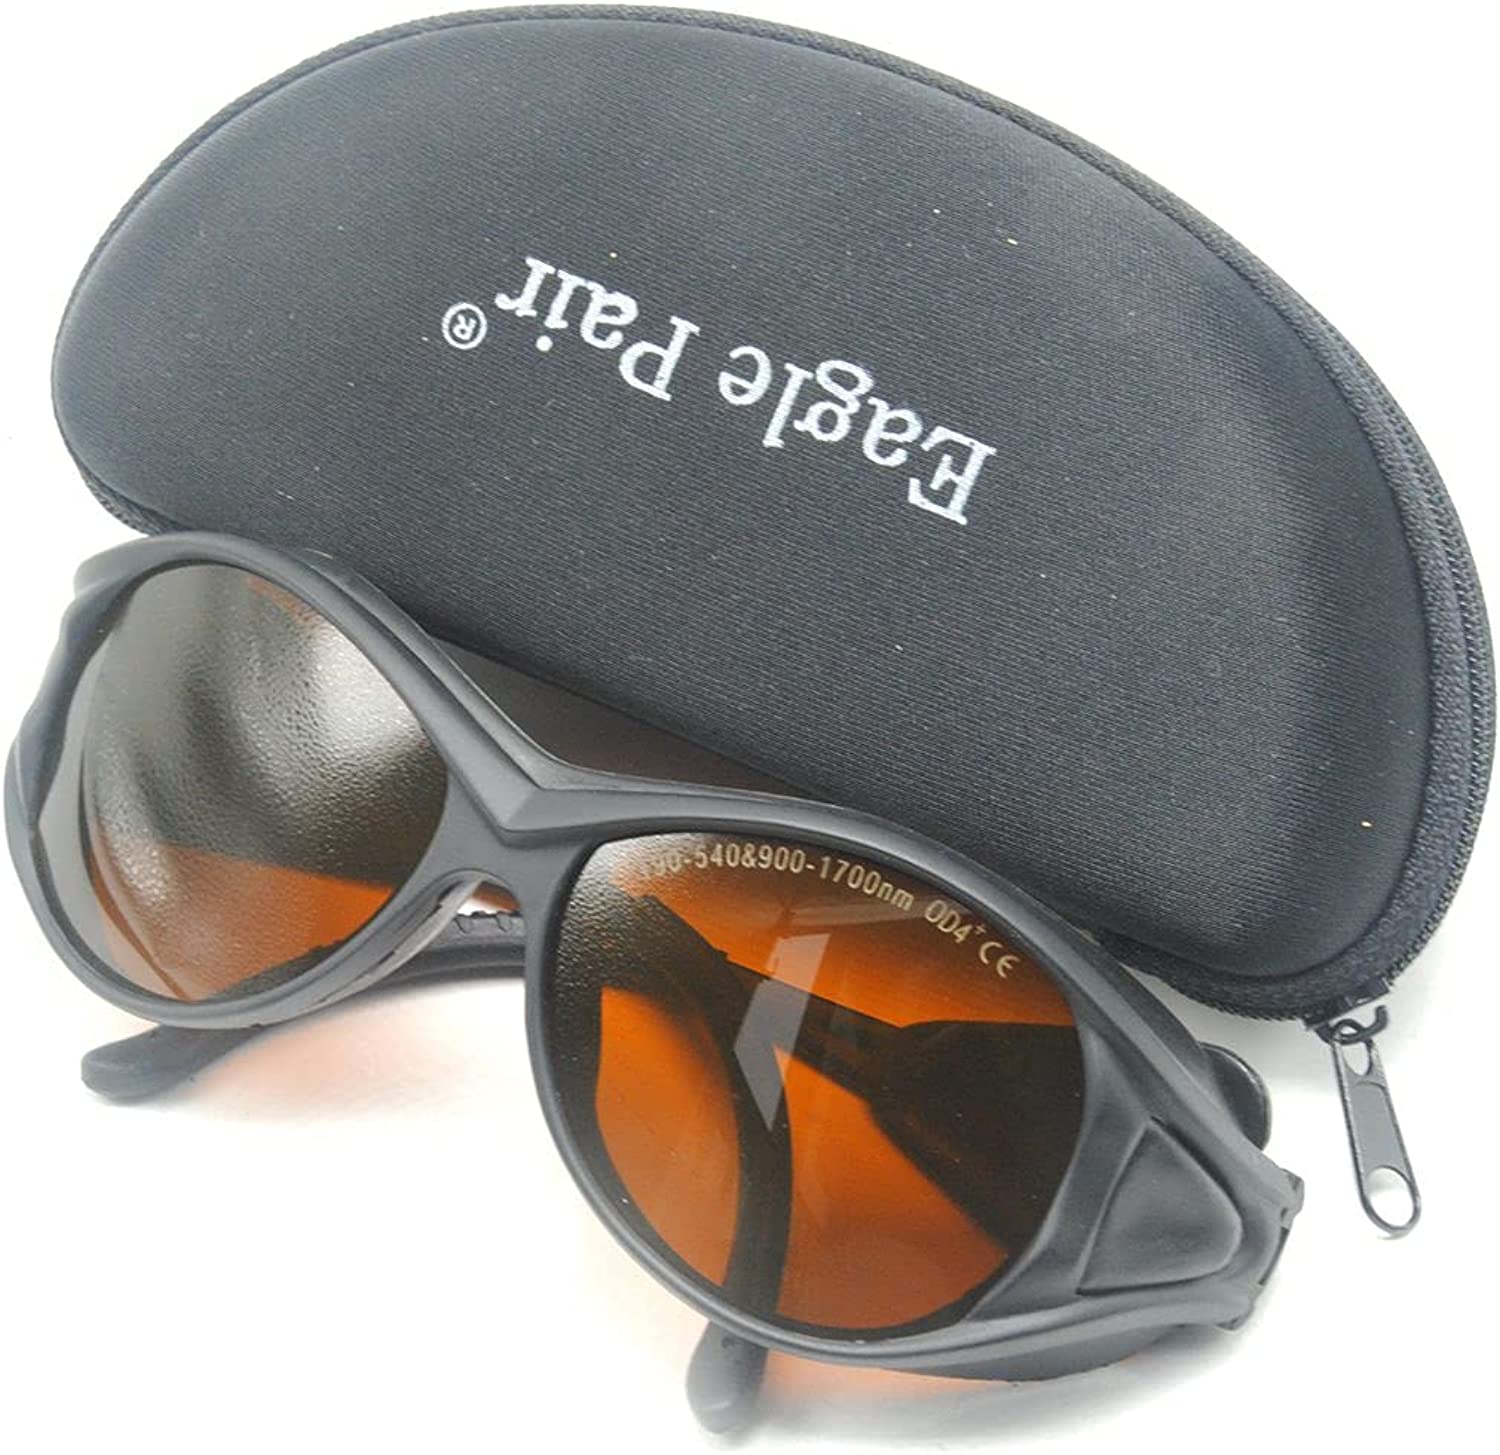 EP-1 190nm-540nm 900nm-1700nm Laser Fashionable Goggles Safety Protective Gl Award